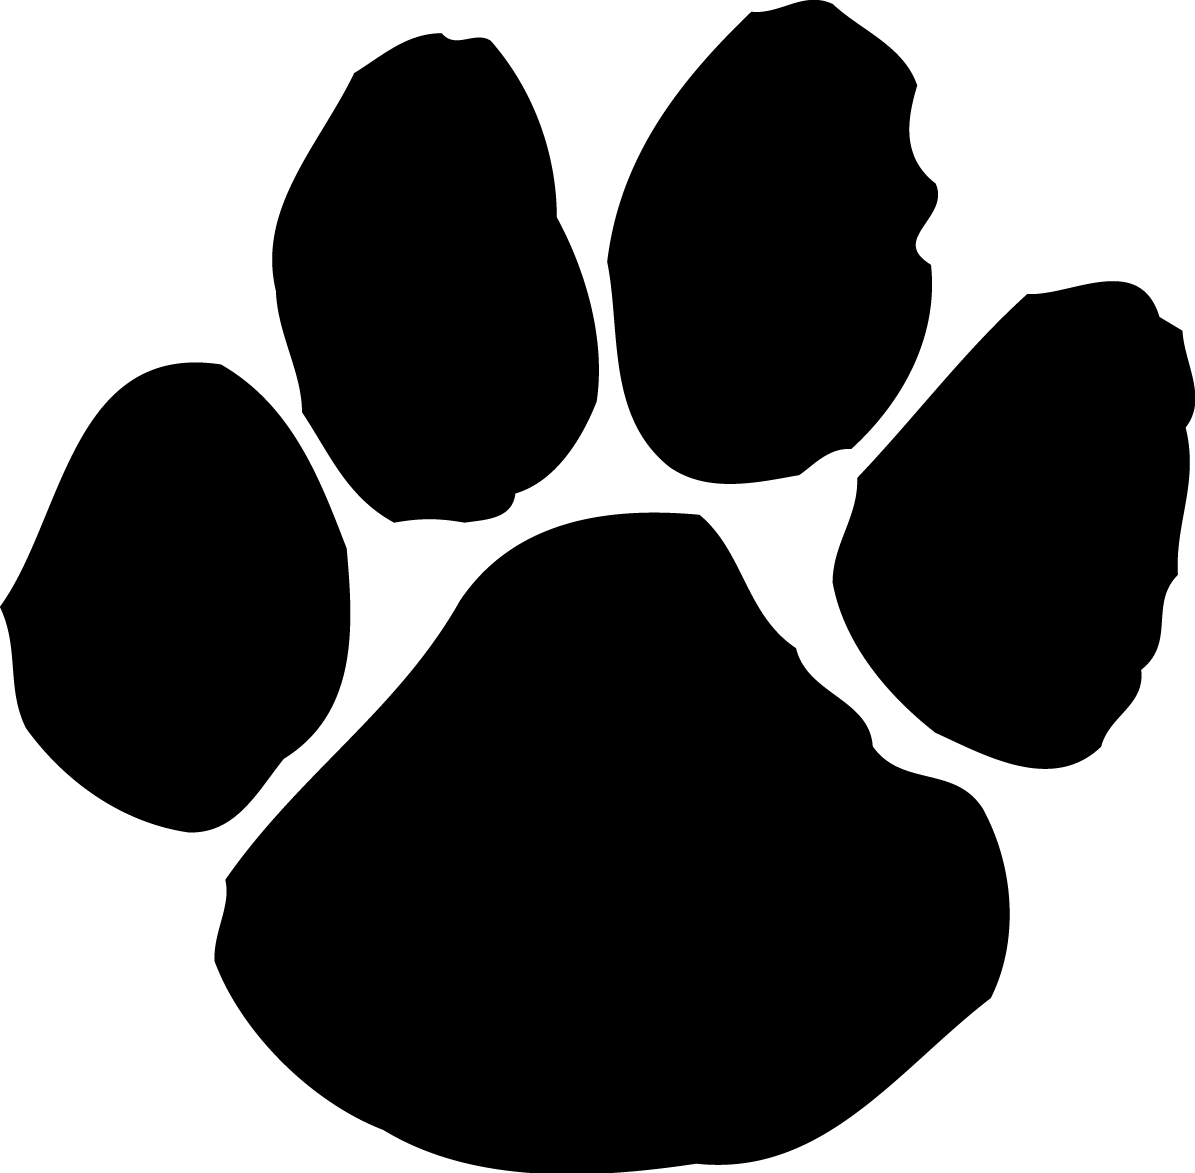 Cute dog paw print clipart - .